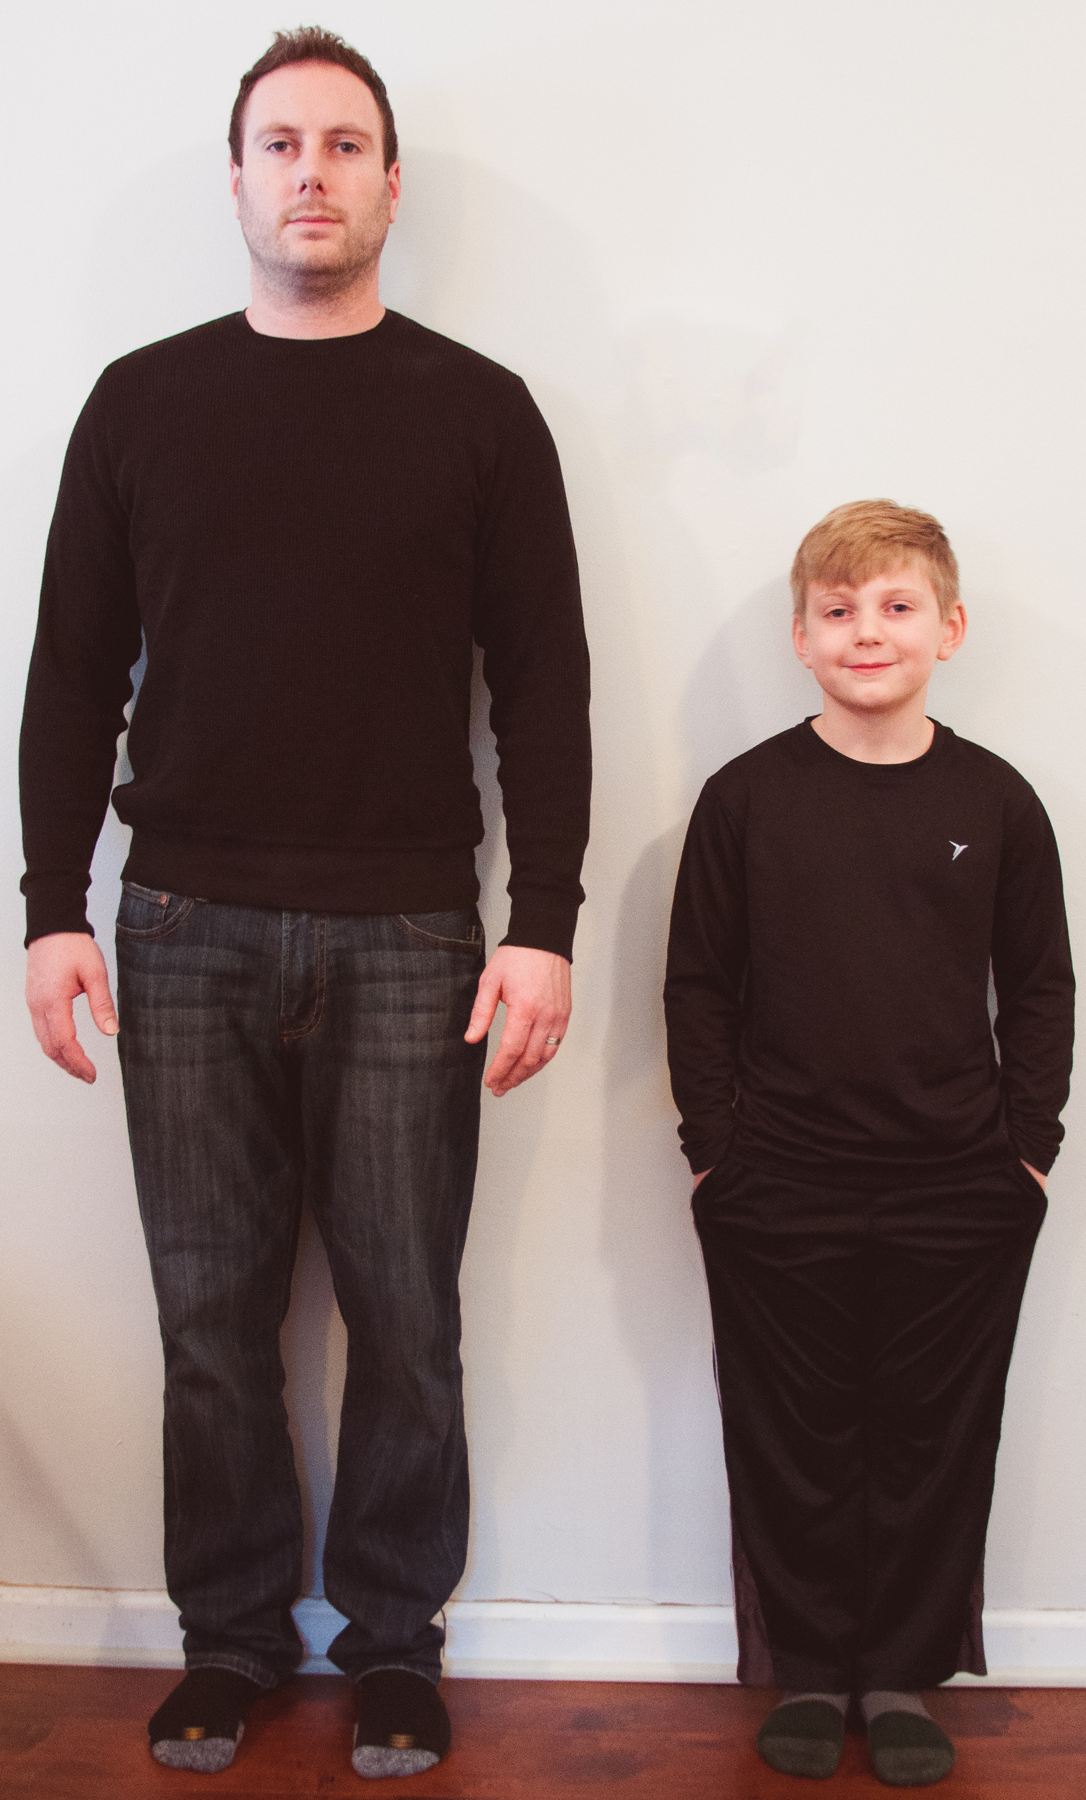 A picture of a man and boy standing next to each other. The top of the boy's head comes up to the chest of the man.